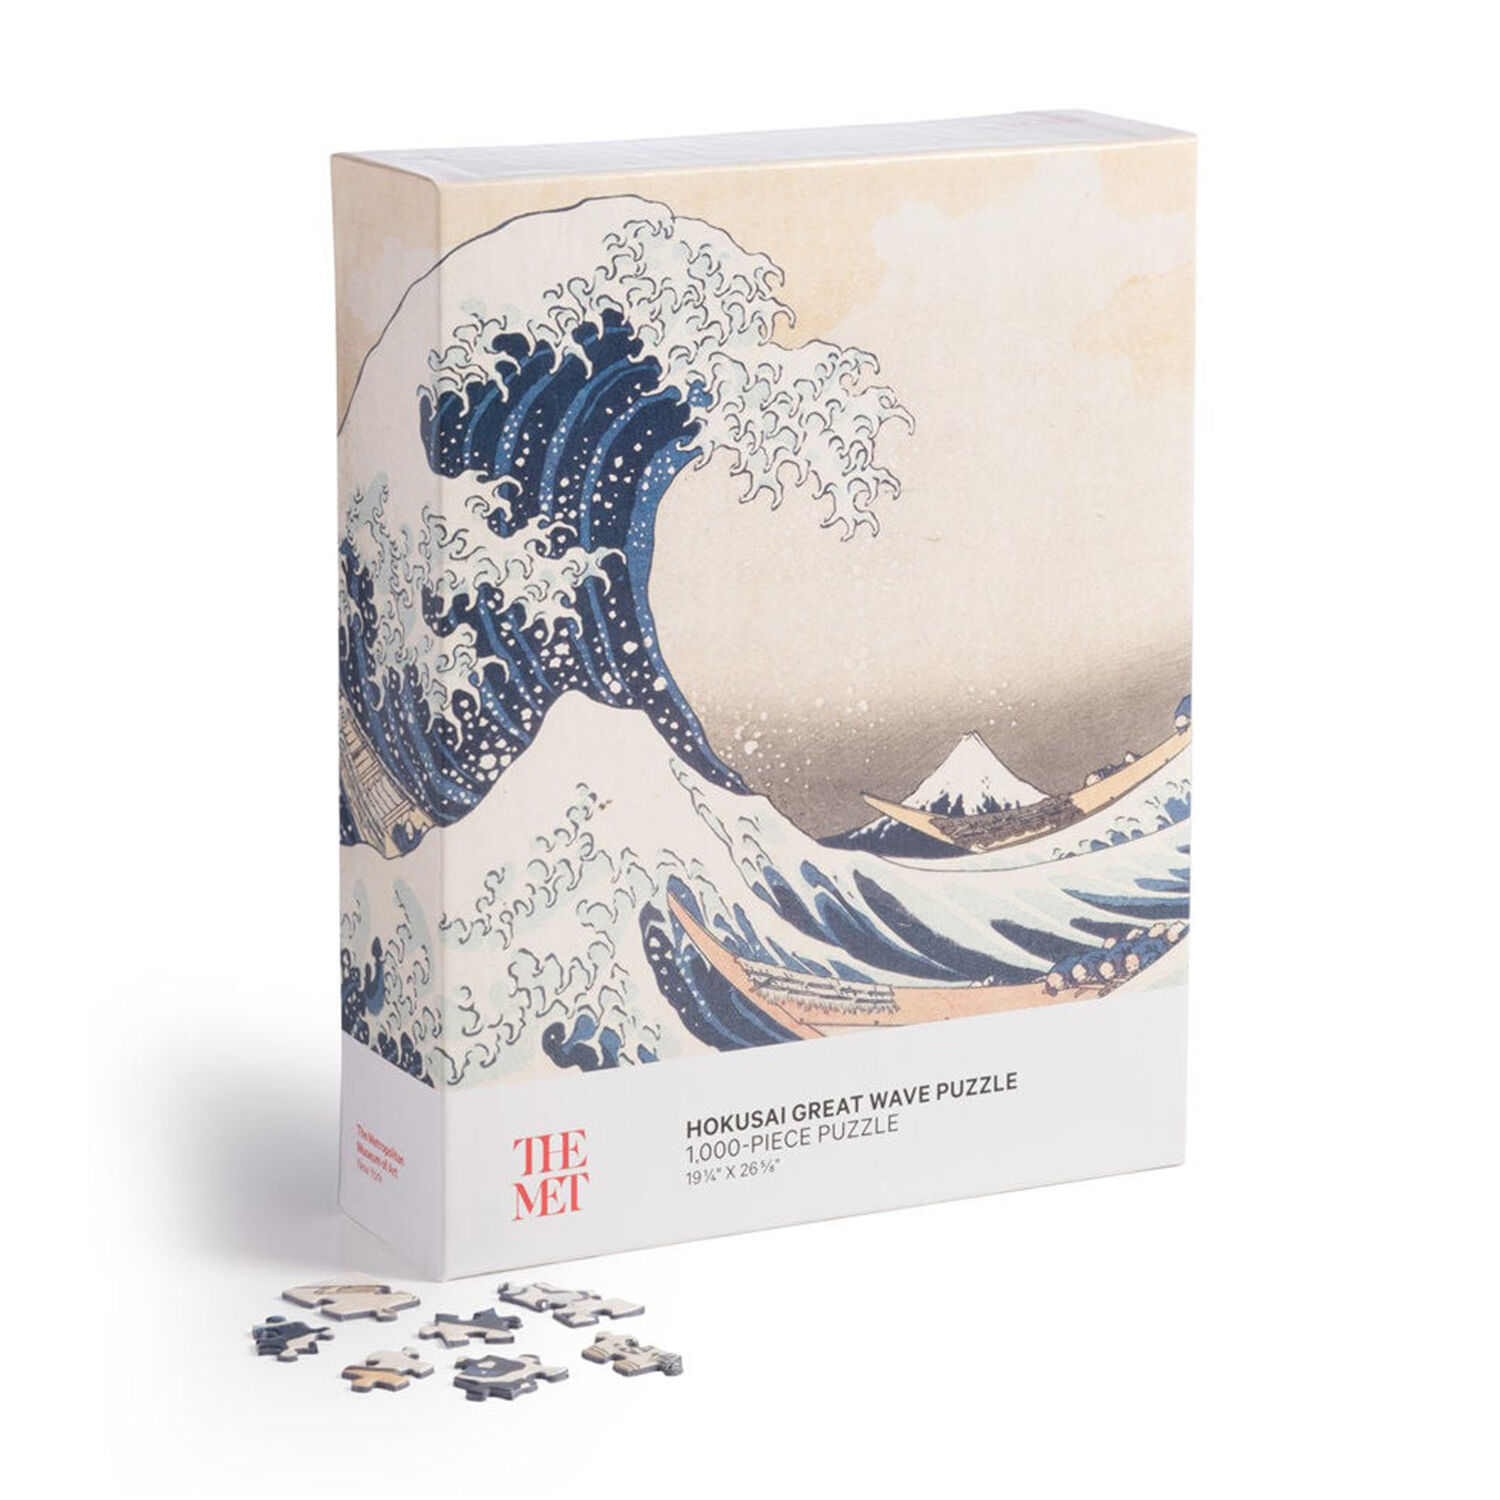 Hokusai Great Wave Puzzle